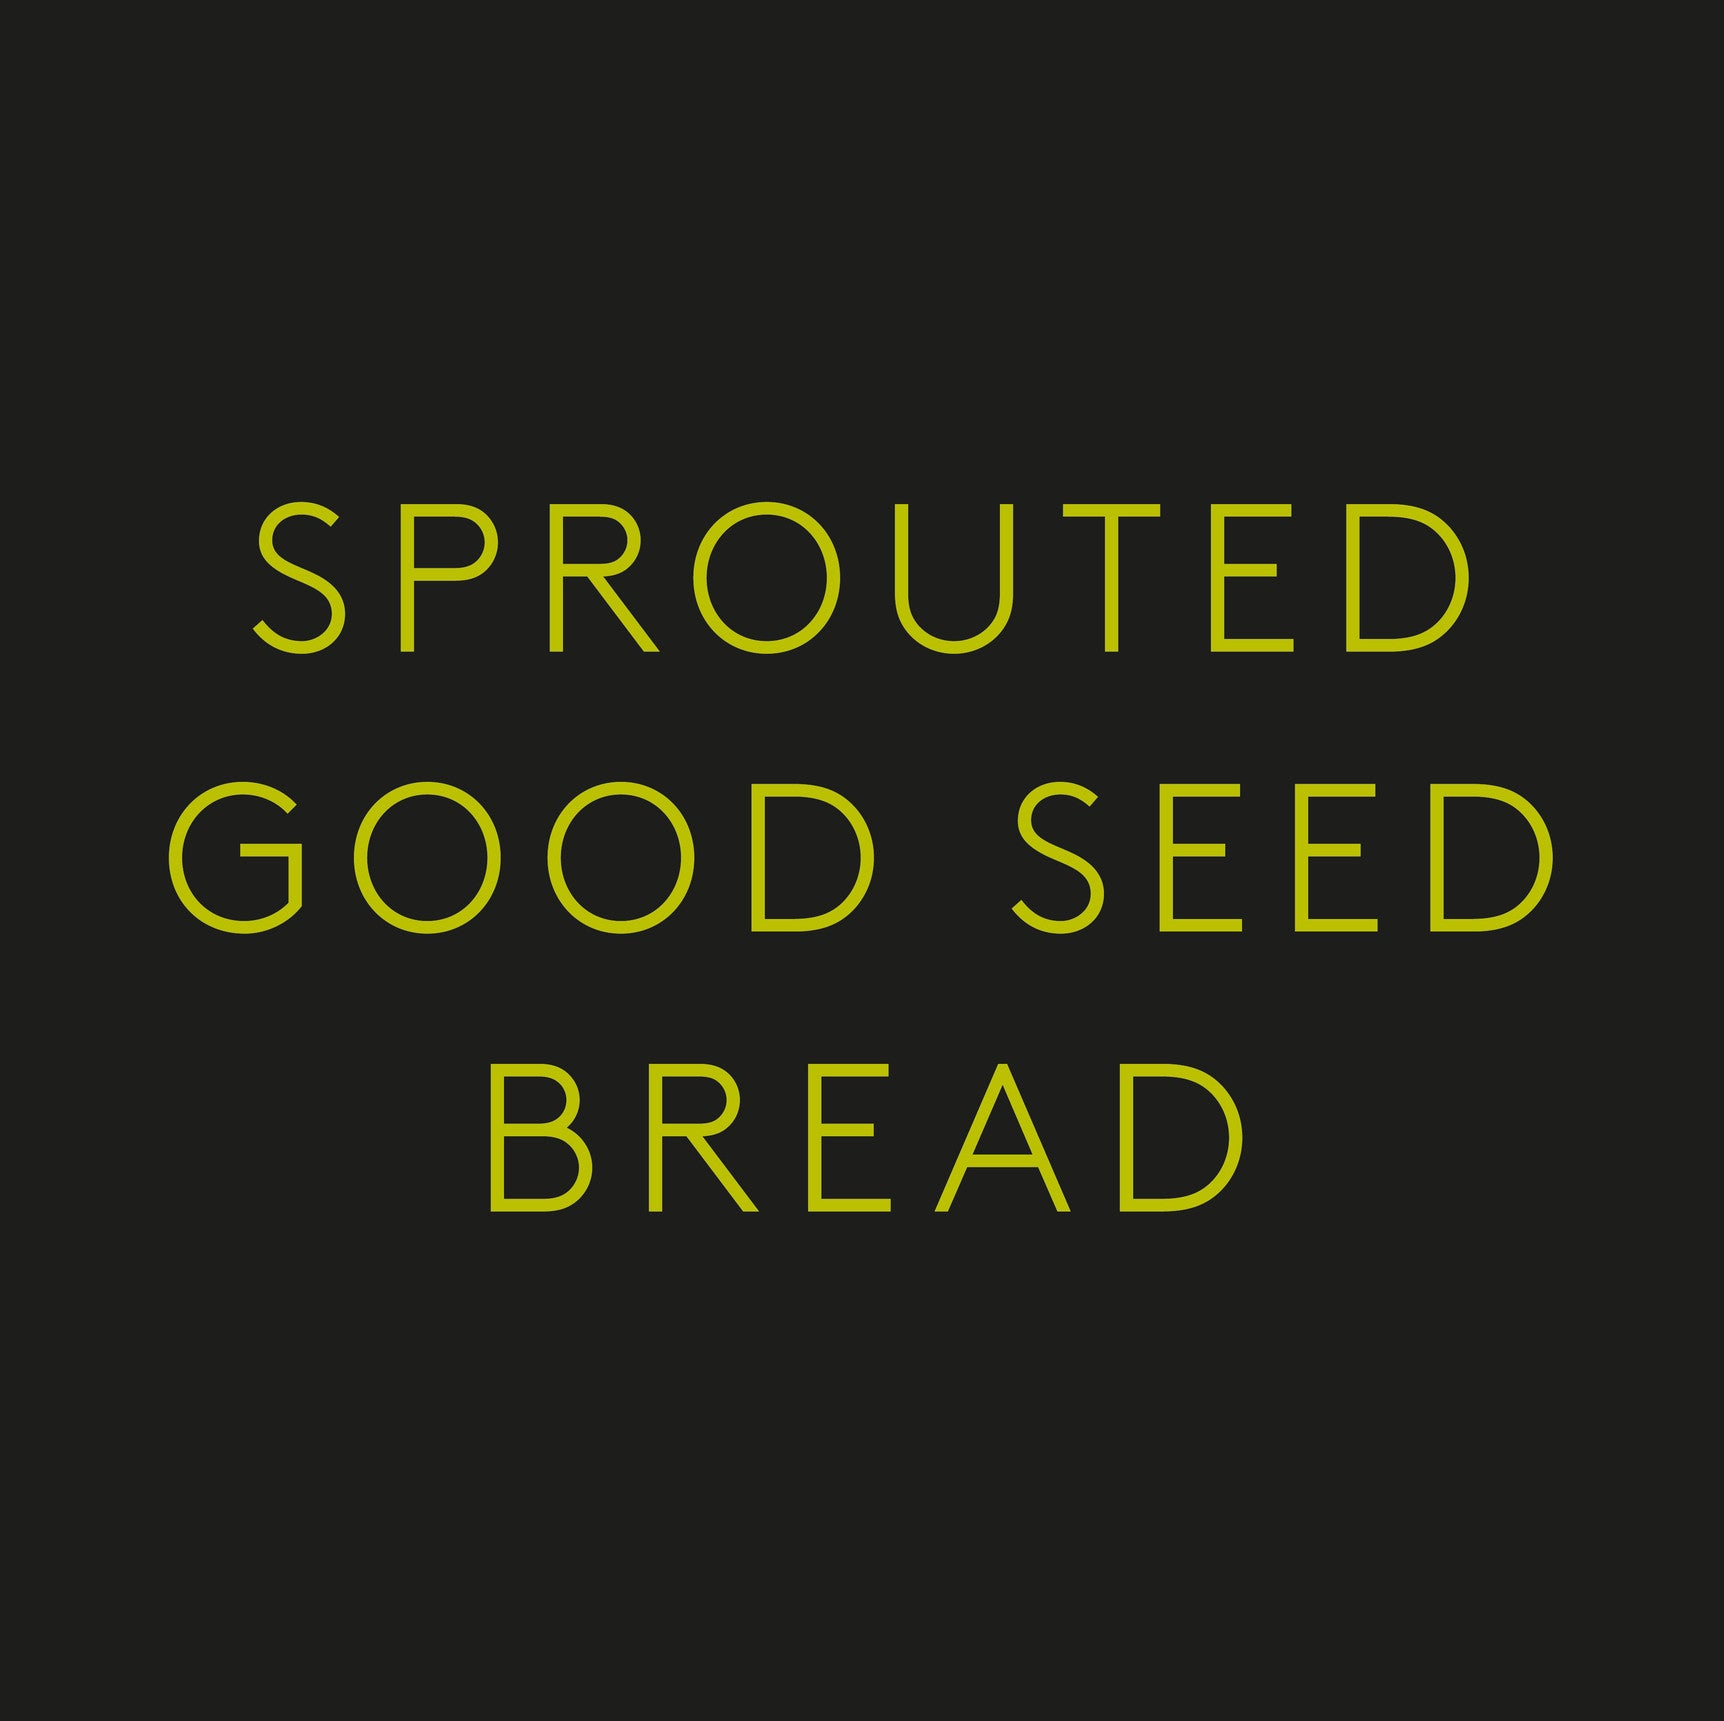 Home St. Sprouted Good Seed